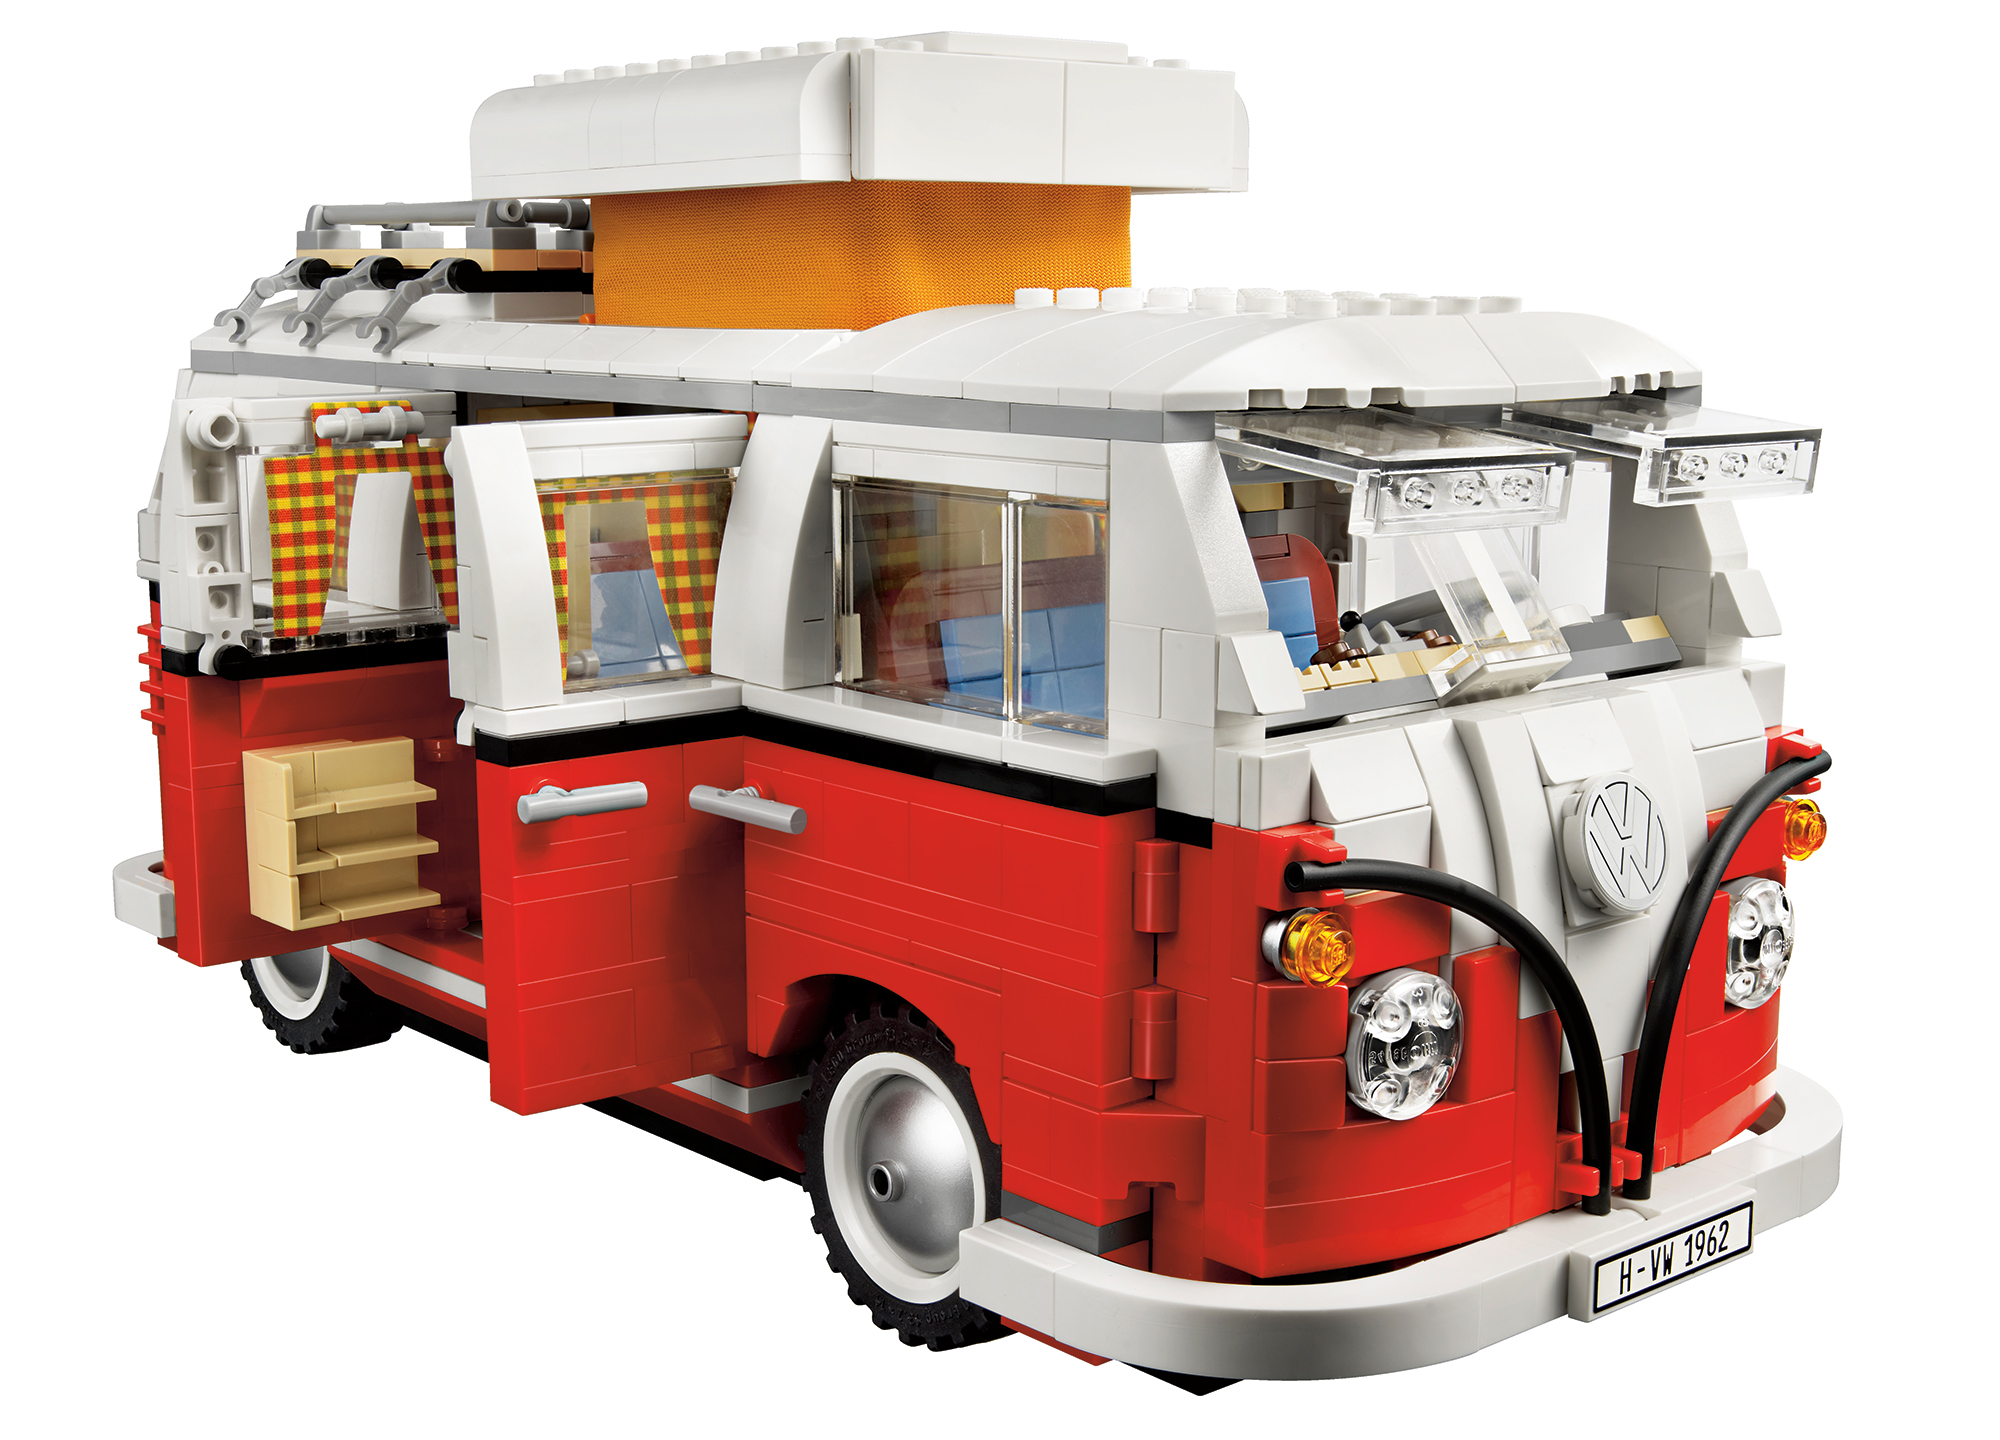 lego s 10220 volkswagen t1 camper van due in october 2011. Black Bedroom Furniture Sets. Home Design Ideas